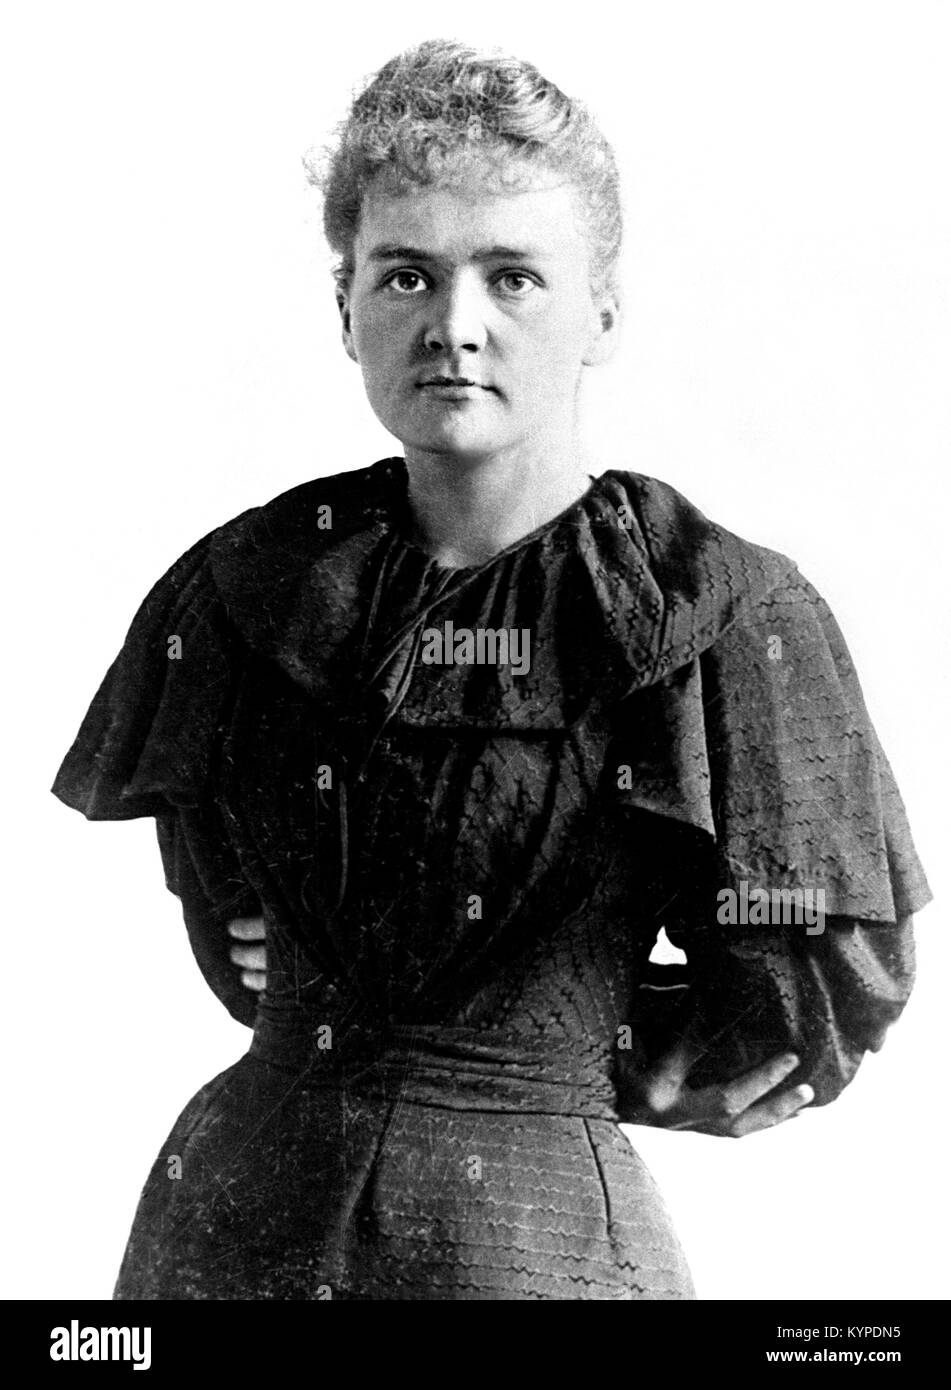 Marie Curie. The Nobel prize winning scientist, Marie Sklodowska Curie (1867-1934). Photo c.1894/5 Stock Photo